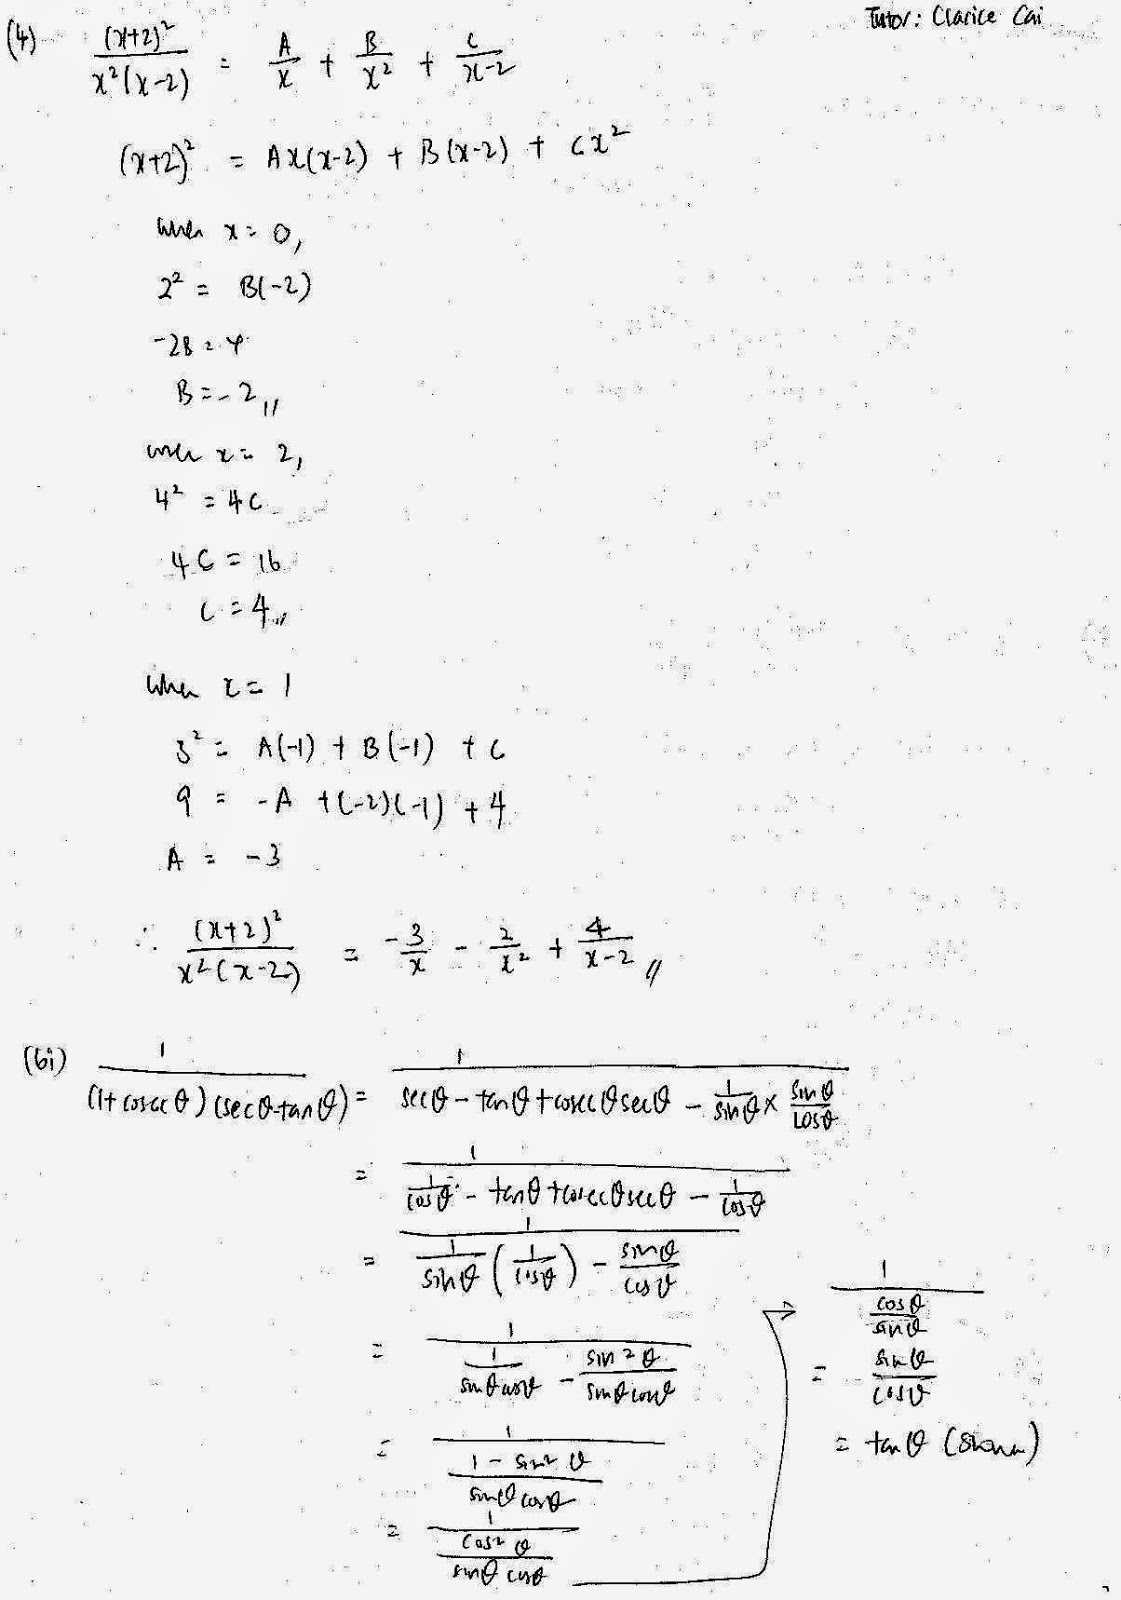 o level math paper 2011 paper Math worksheet igcse additional mathematics formula sheet documents maths past papers 2012 about these ads coordinate geometry challenging o level questions a with solutions answers exam paper download cxc add 2 question 1c june 2013 act sat syllabus materials resources writing service english 3 essay on mother cie high achievers al majd.